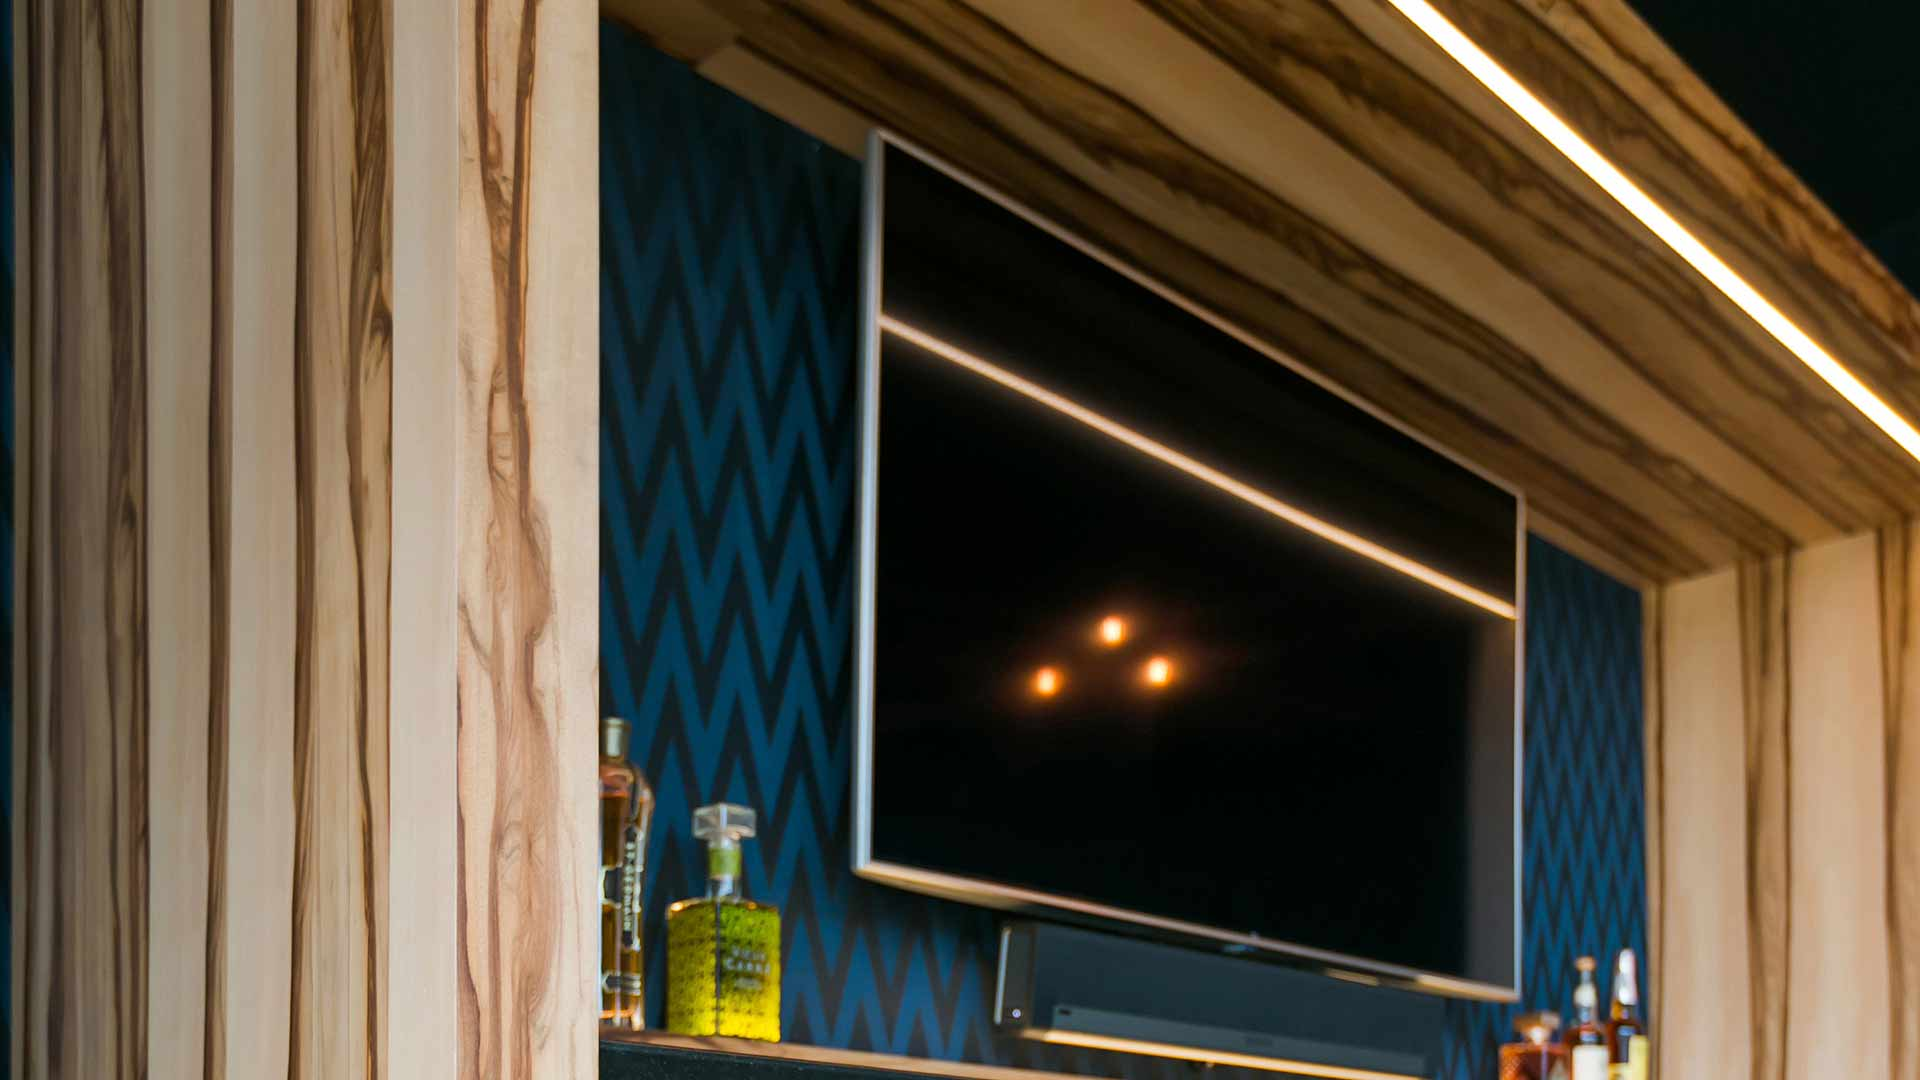 Cabinet Detail - humidor, beverage coolers, wide screen TV - Midcentury Modern Addition (Cigar Room) - Brendonwood, Indianapolis